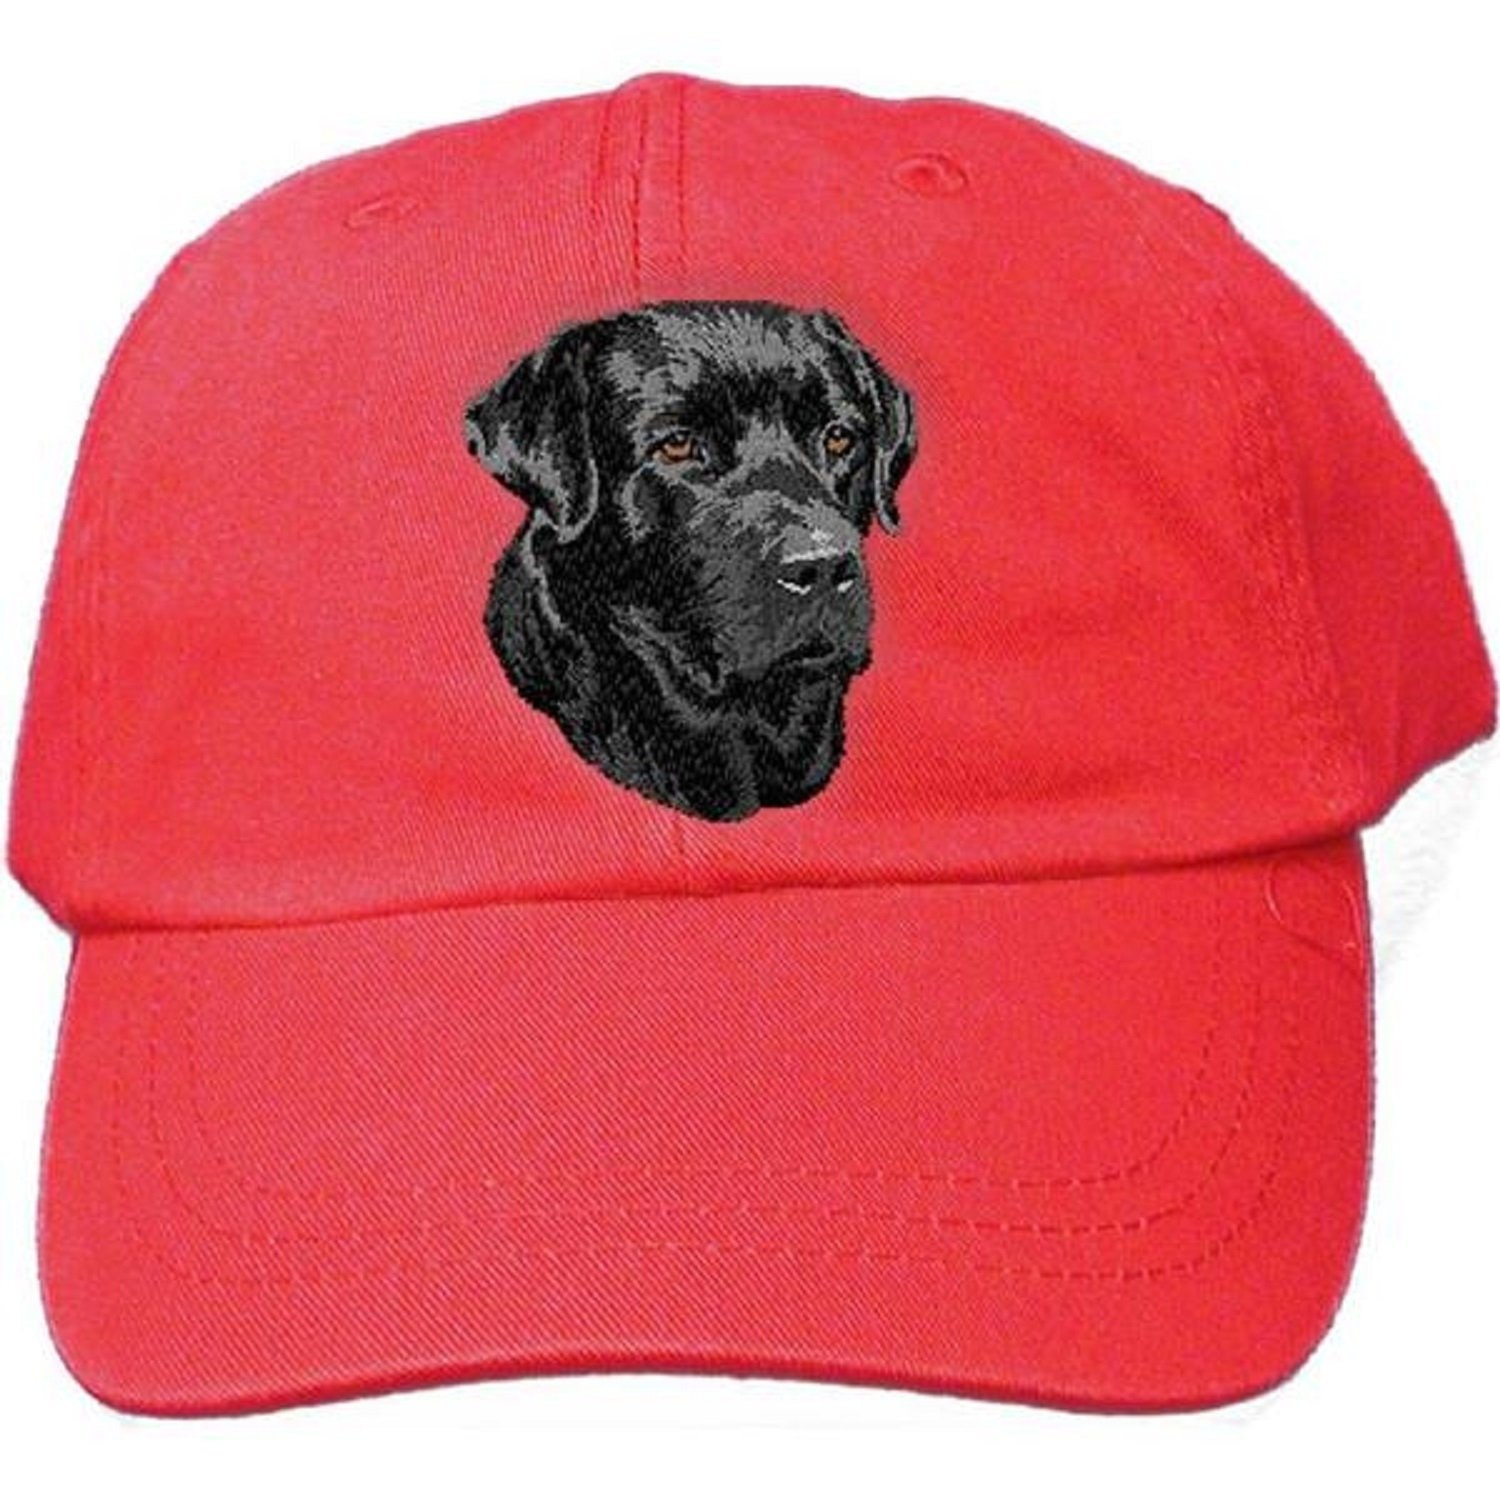 846d33a1405d6 Labrador Retriever Embroidered Caps